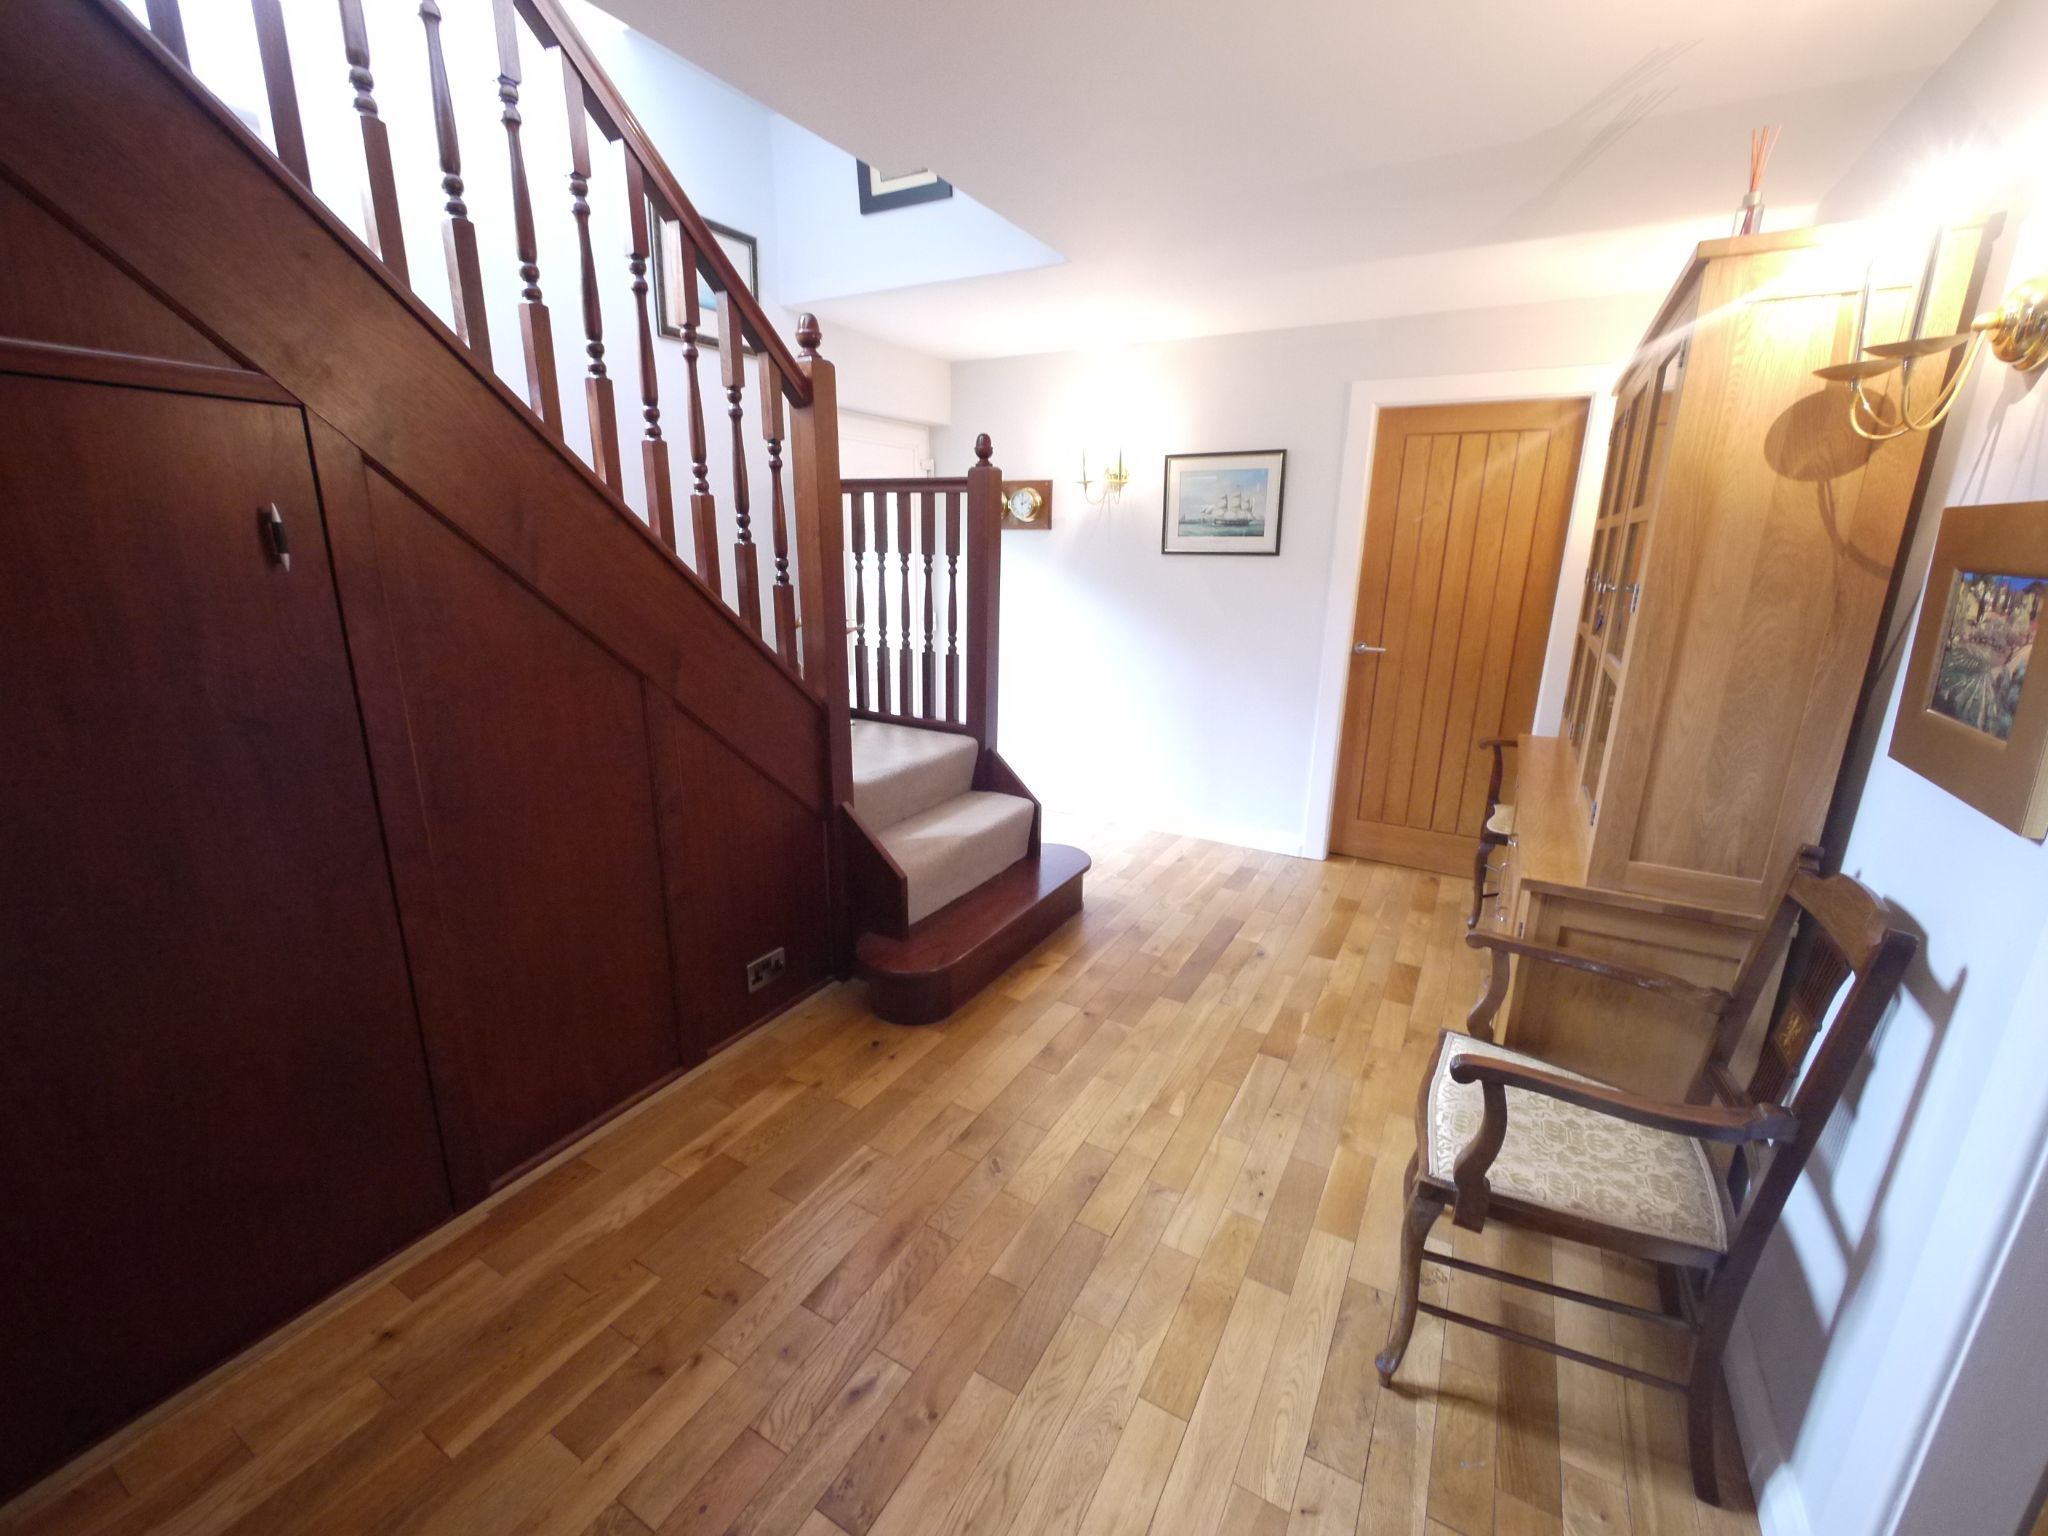 4 bedroom detached house For Sale in Brighouse - Entrance Hall.